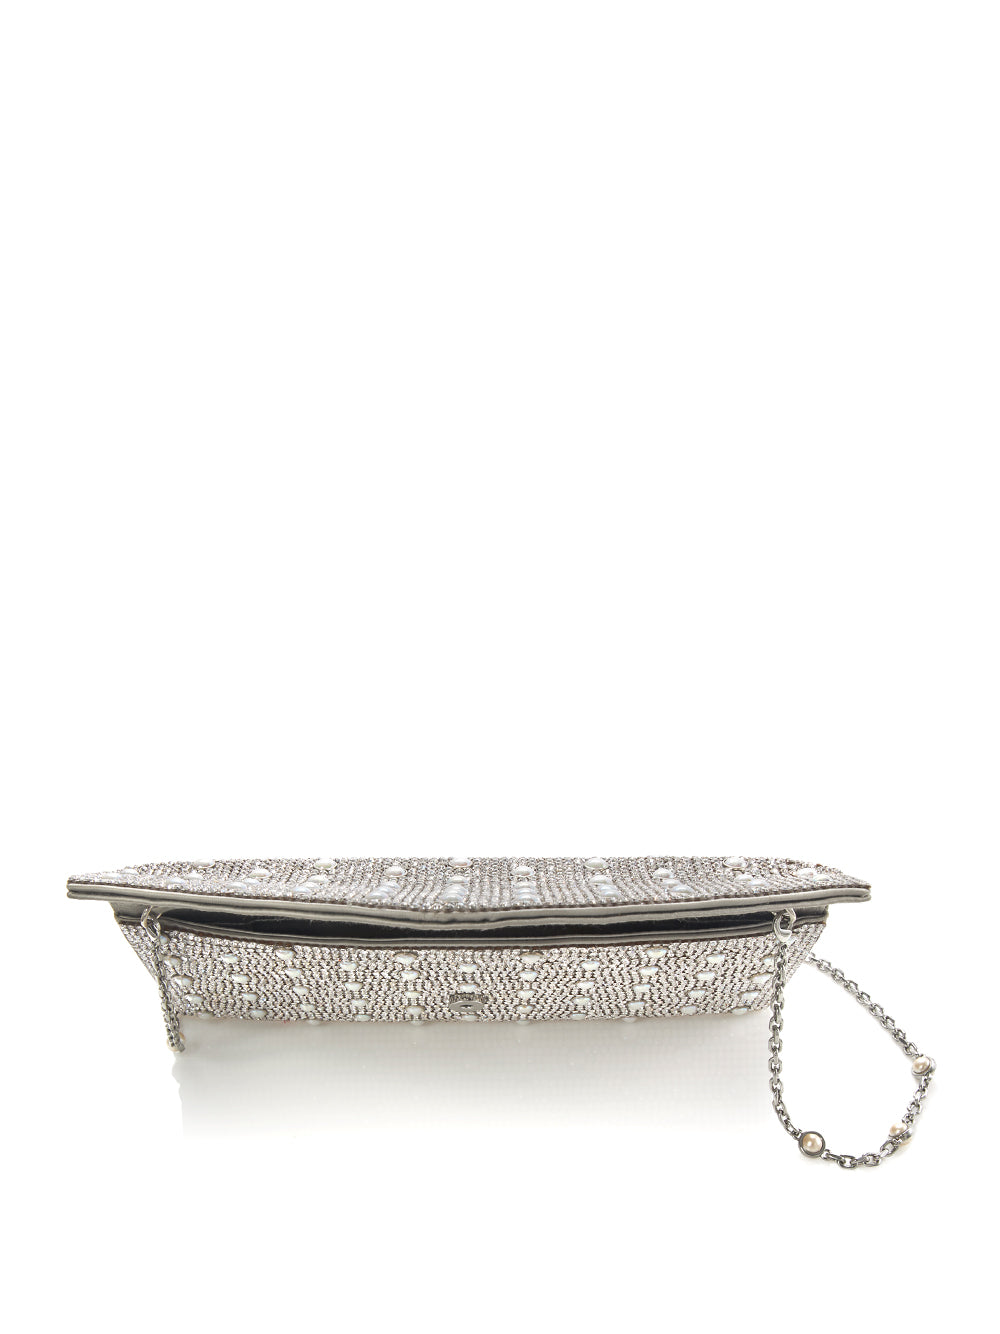 Envelope Silver Crystal Clutch with Pearl Studs Top